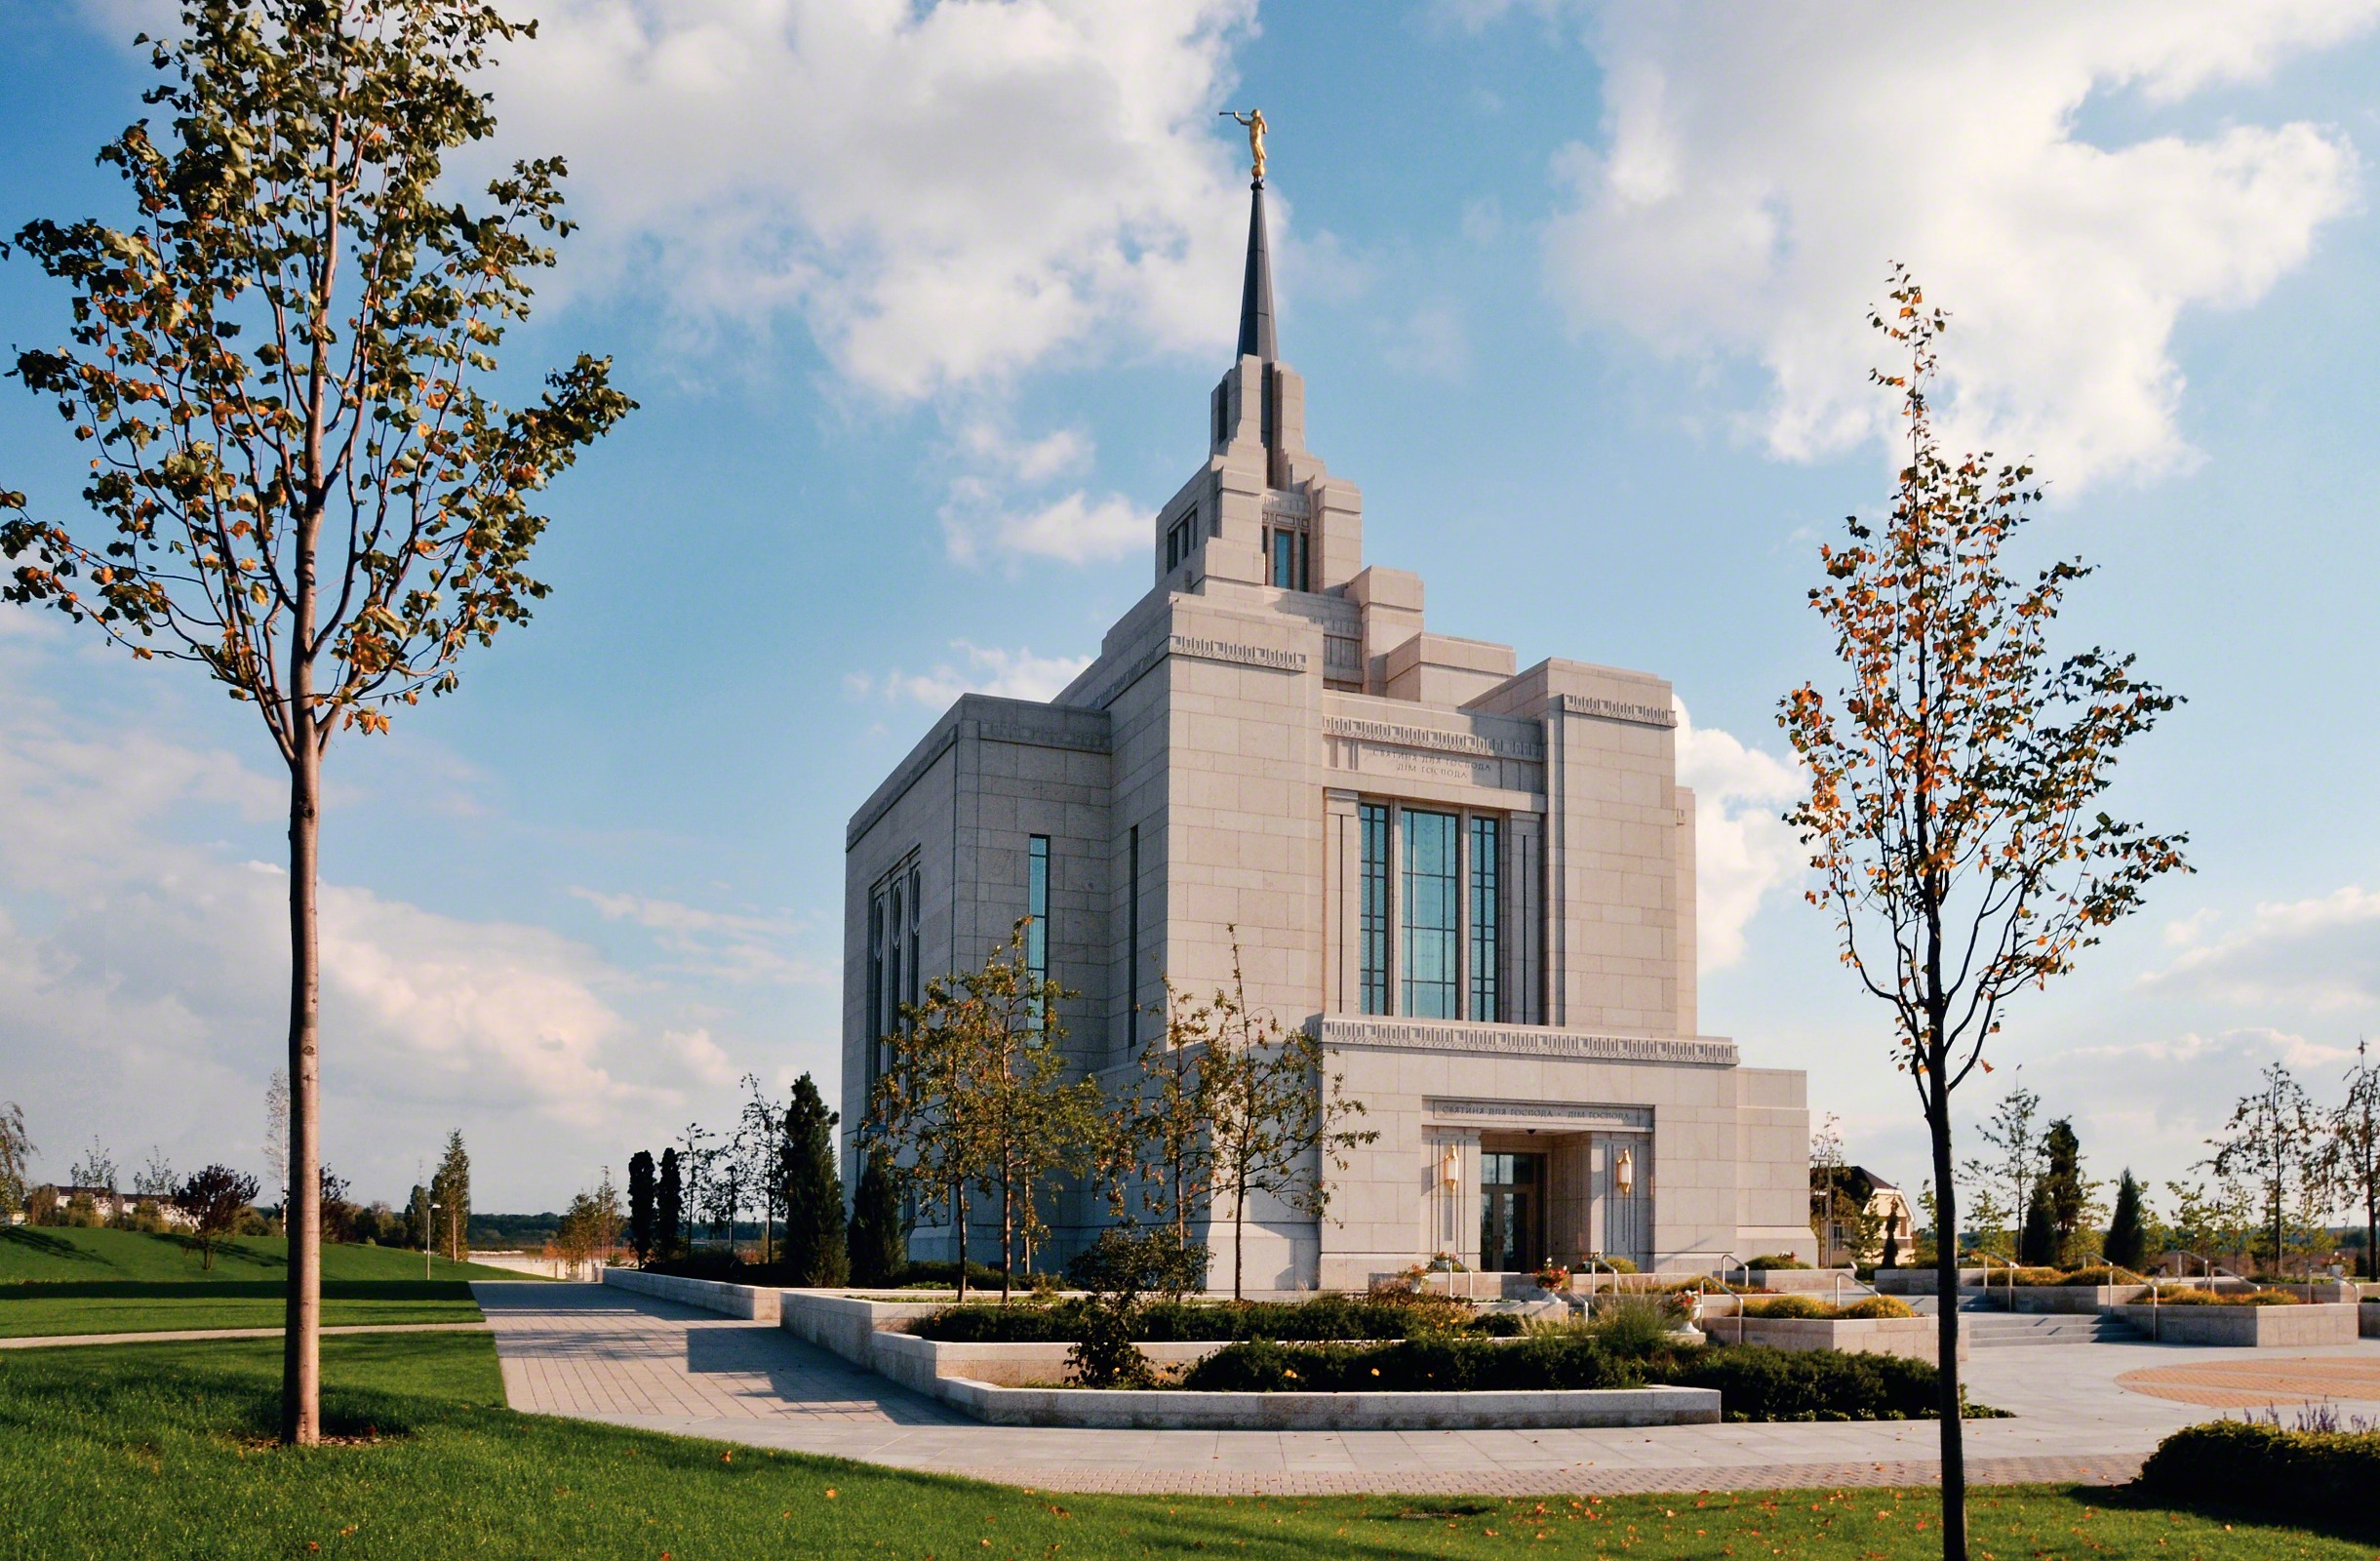 The Church of Jesus Christ of Latter-day Saints - Morton WA | 102 Crumb Rd, Morton, WA, 98356 | +1 (360) 496-5959